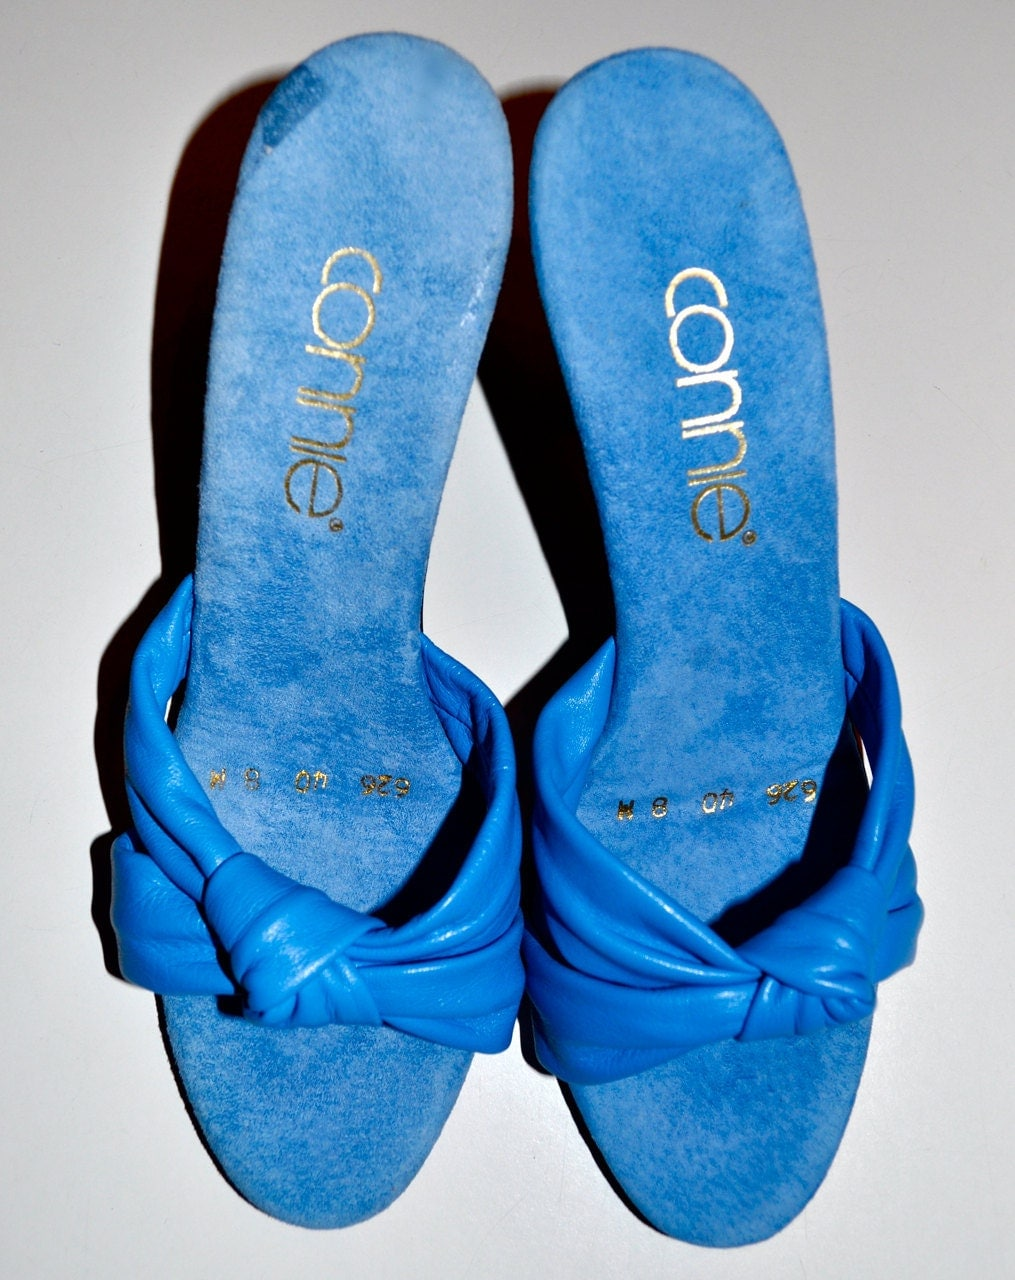 CONNIE SHOES 1970s Blue Leather and Suede 3.5 Inch Heel SANDALS Shoes